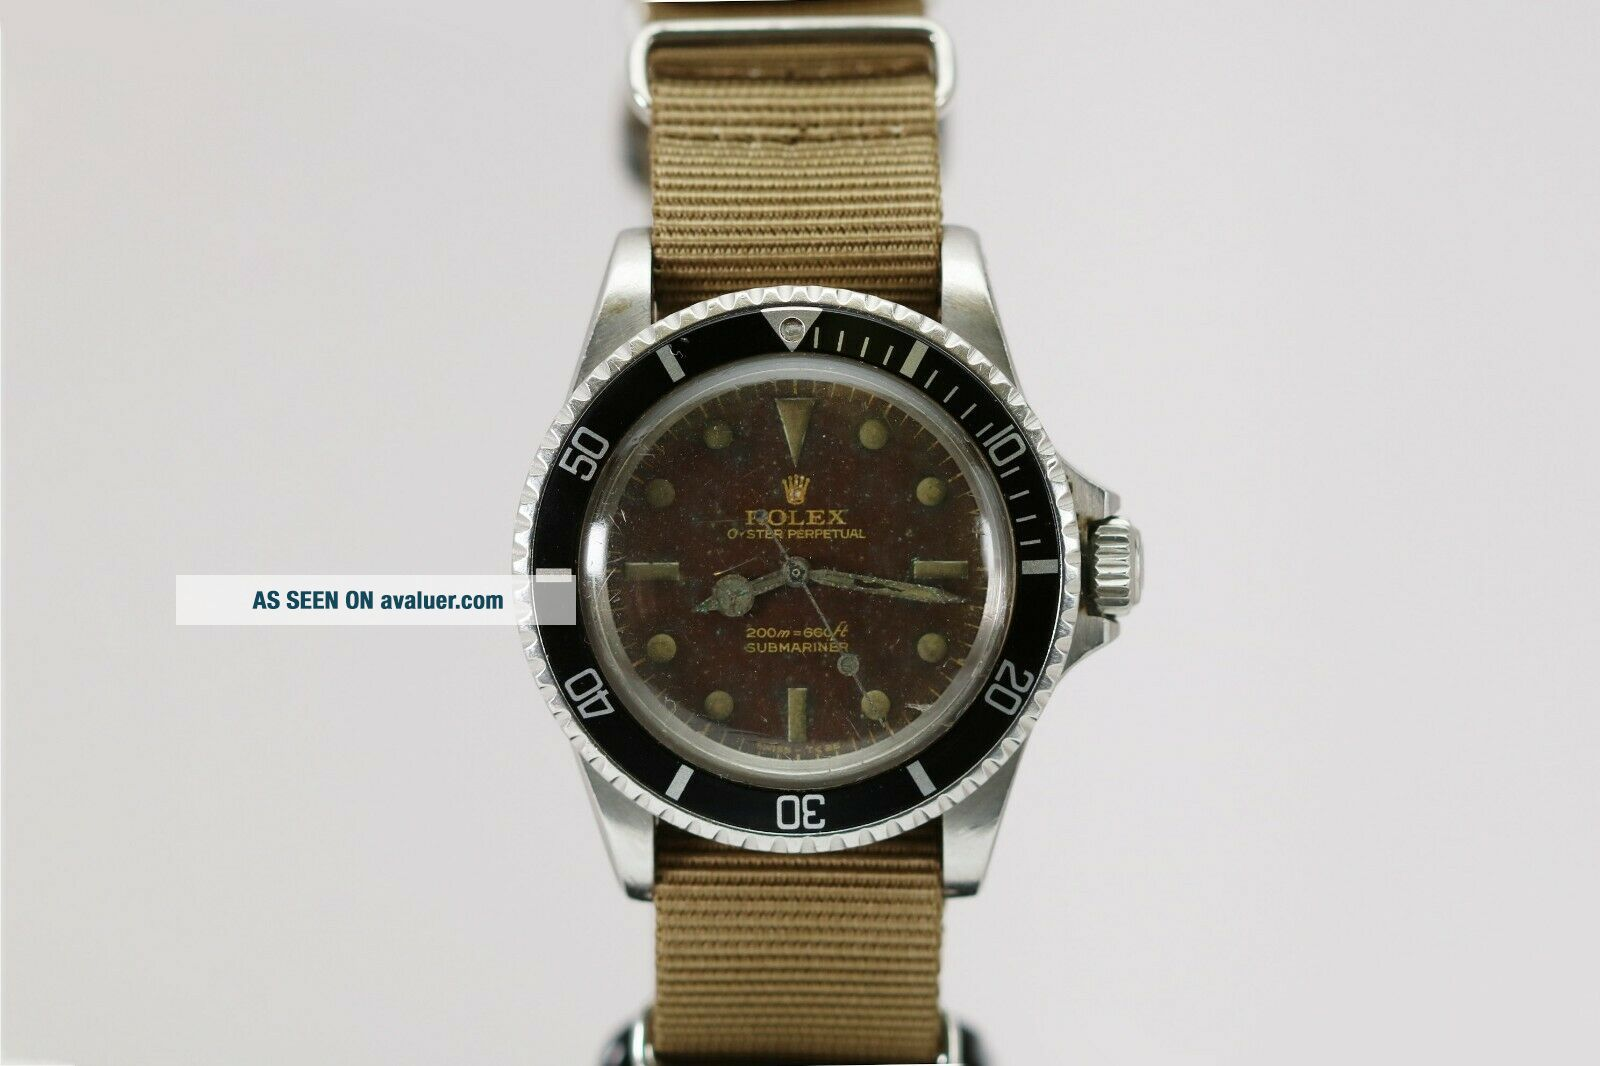 Rolex Submariner Ref 5513 Vintage Gilt Tropical Brown Dial Dive Watch 1960s